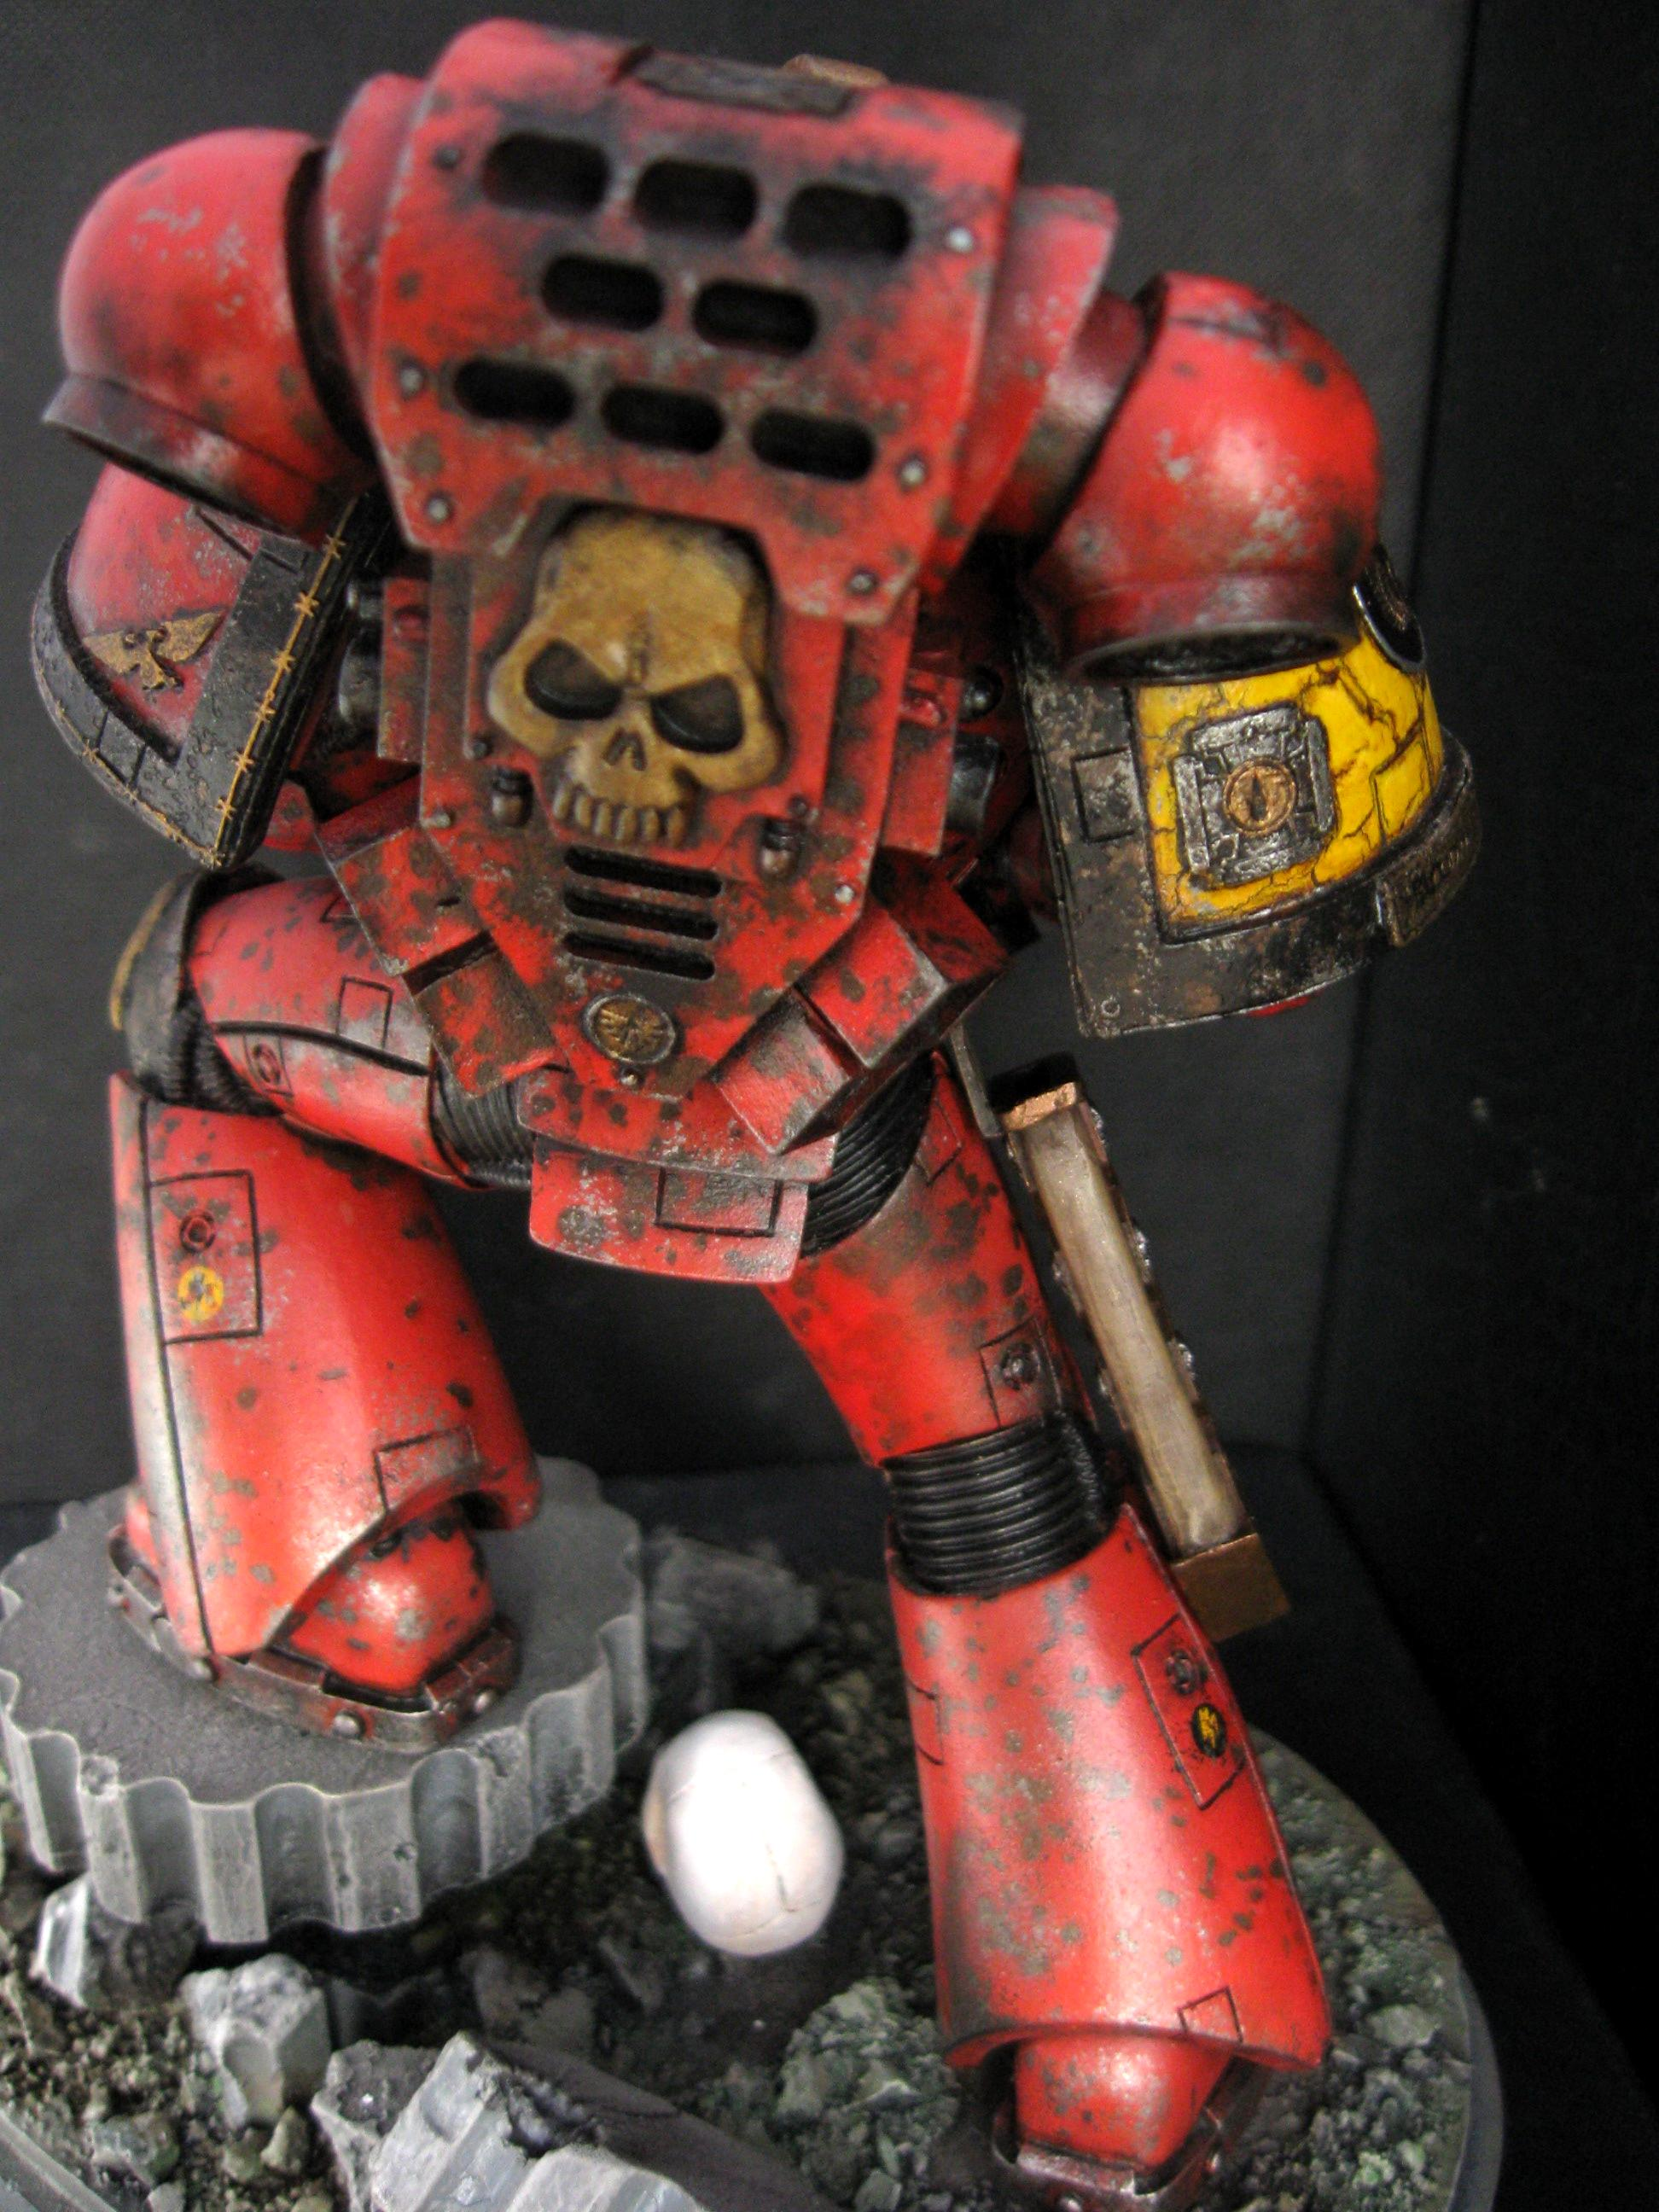 Blood Angels, Forge World, Large, Space Marines, Warhammer 40,000